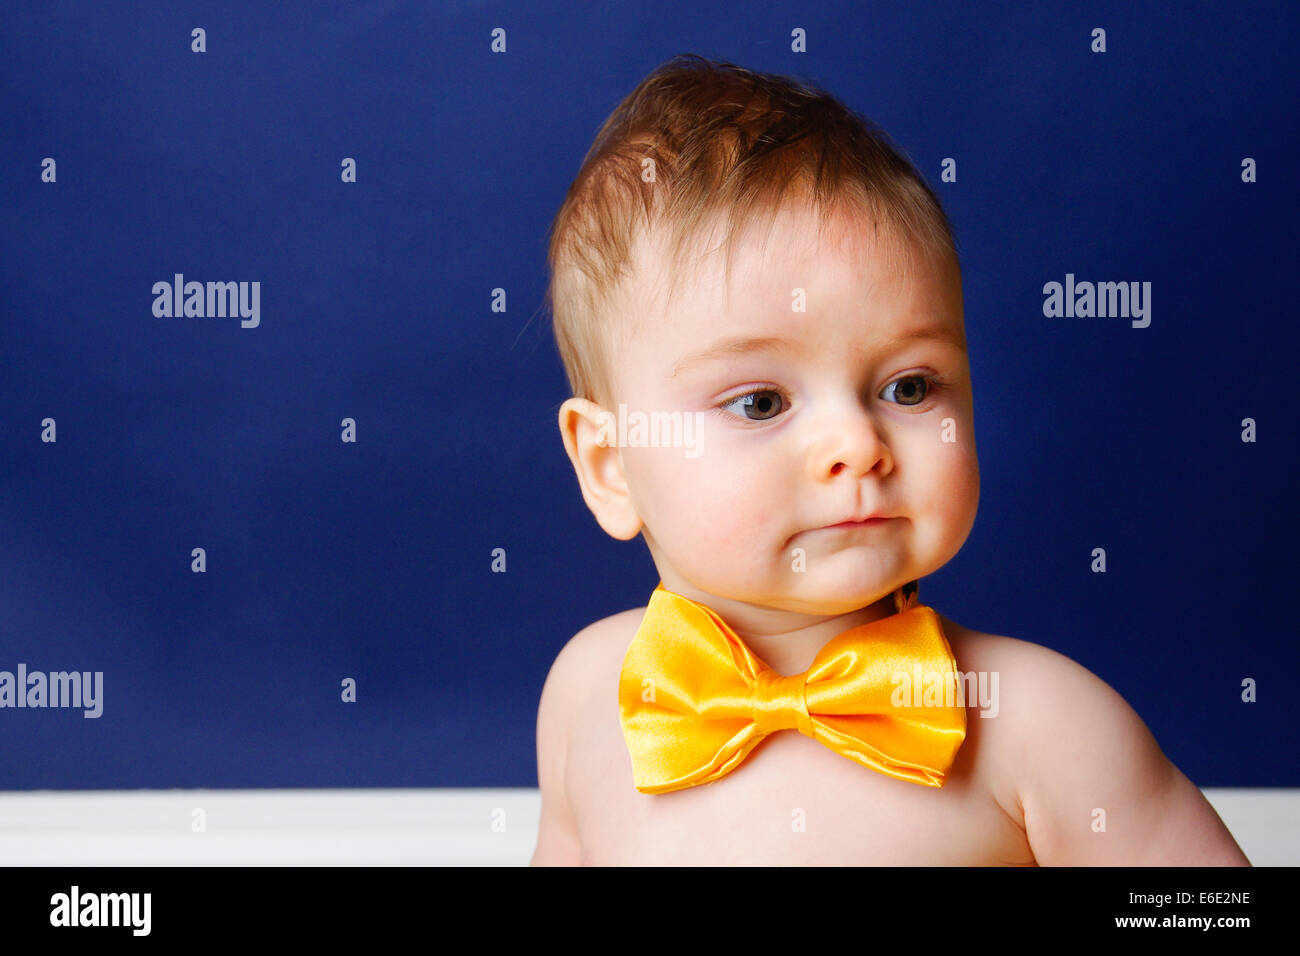 9 month old baby boy in a yellow bow tie - Stock Image